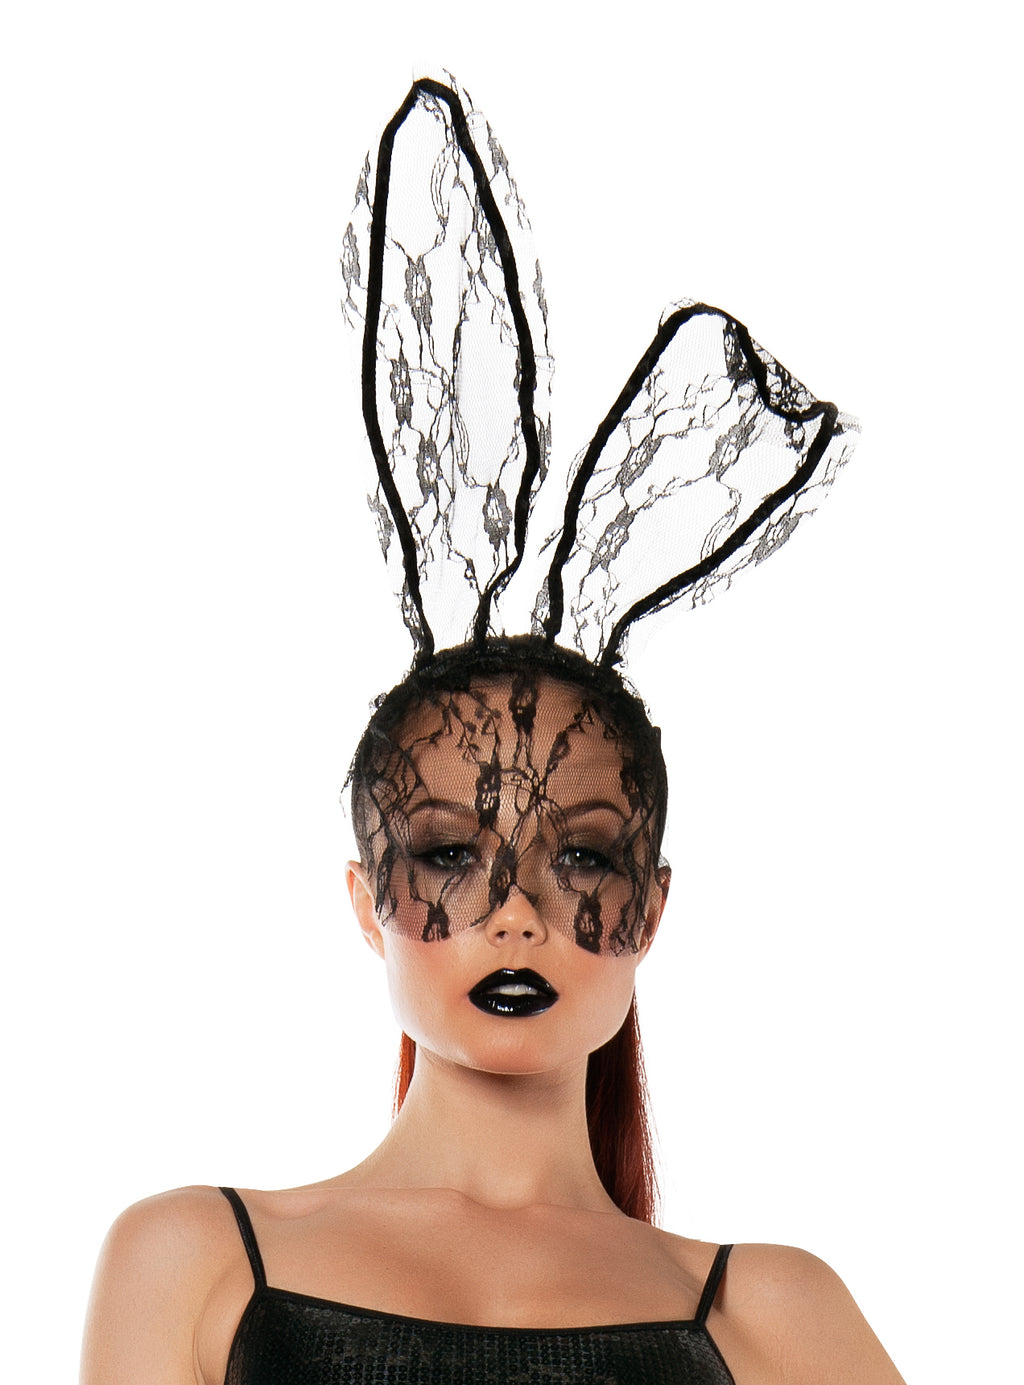 Starline Women's Lace Bunny Mask Headband Accessory Womens Costume Accessories - Nastassy